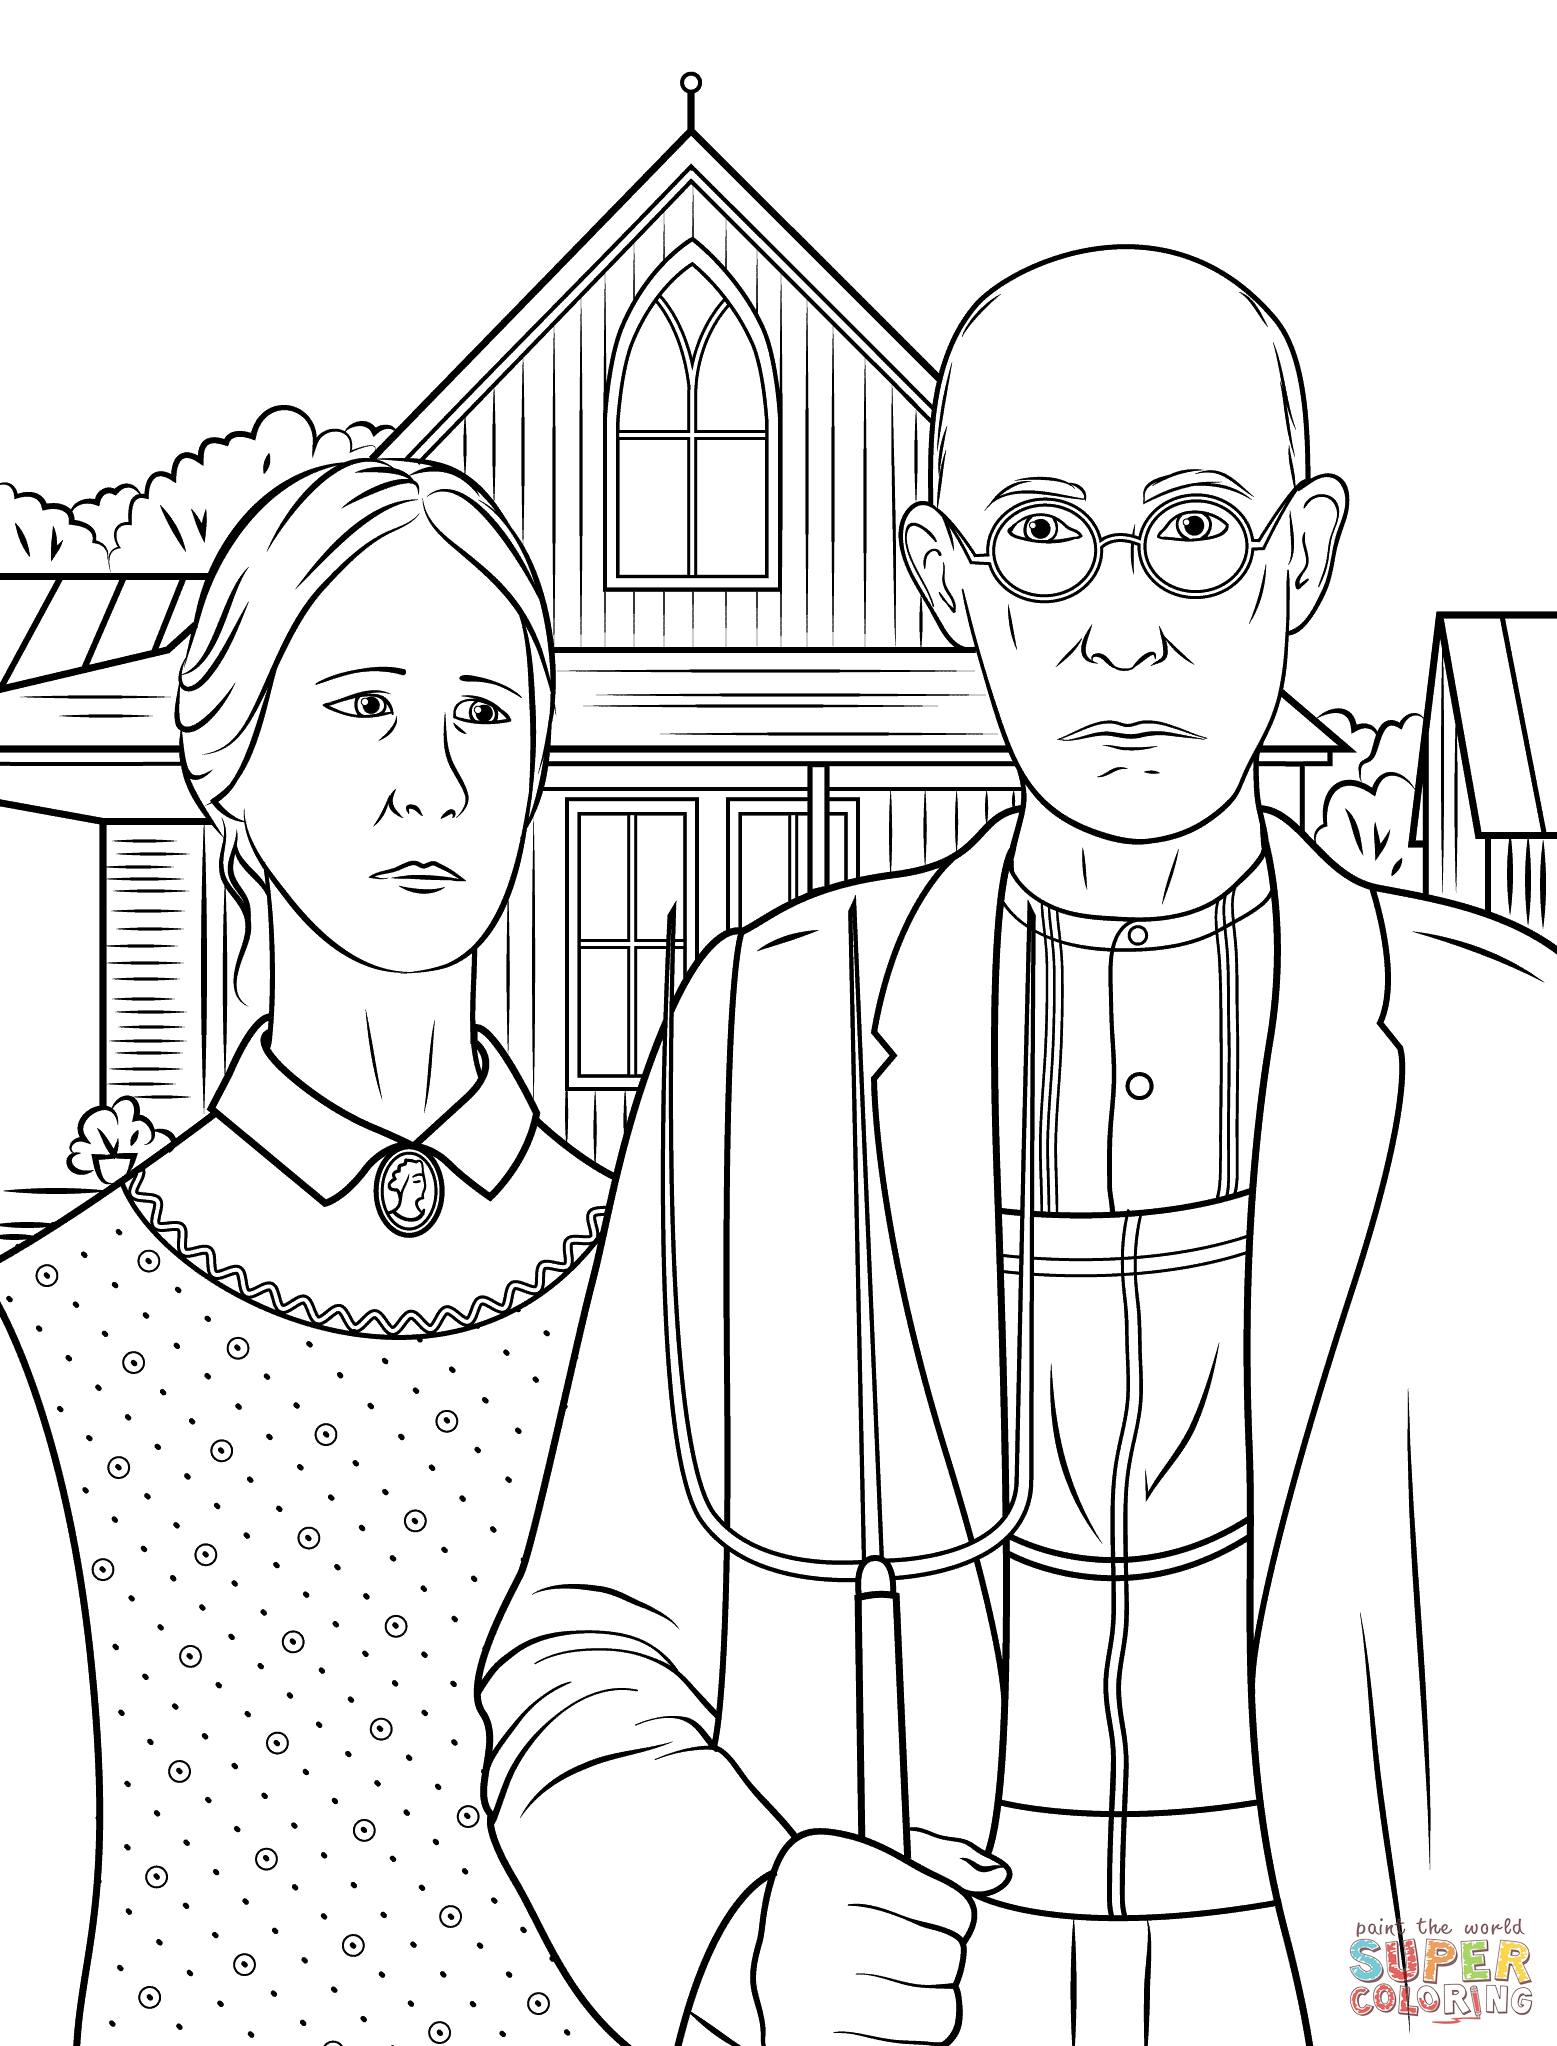 American Gothic By Grant Wood Super Coloring Grant Wood American Gothic American Gothic Famous Art Coloring